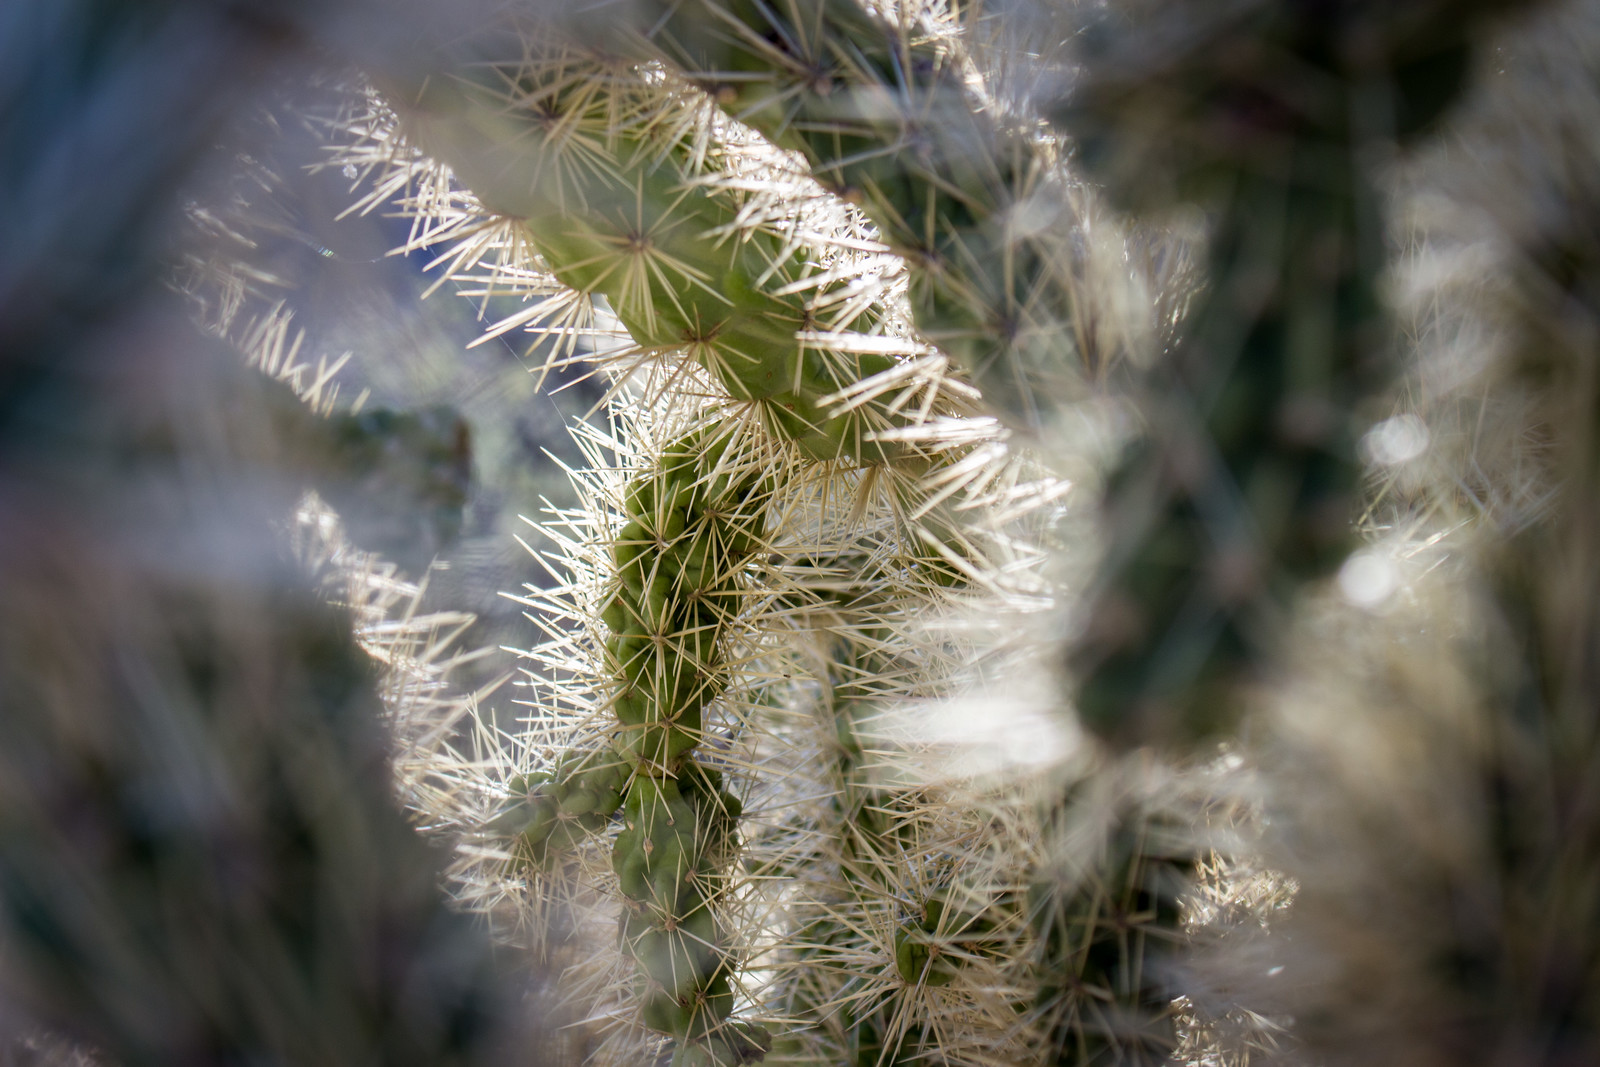 Looking inside the spiky branches of a cholla cactus